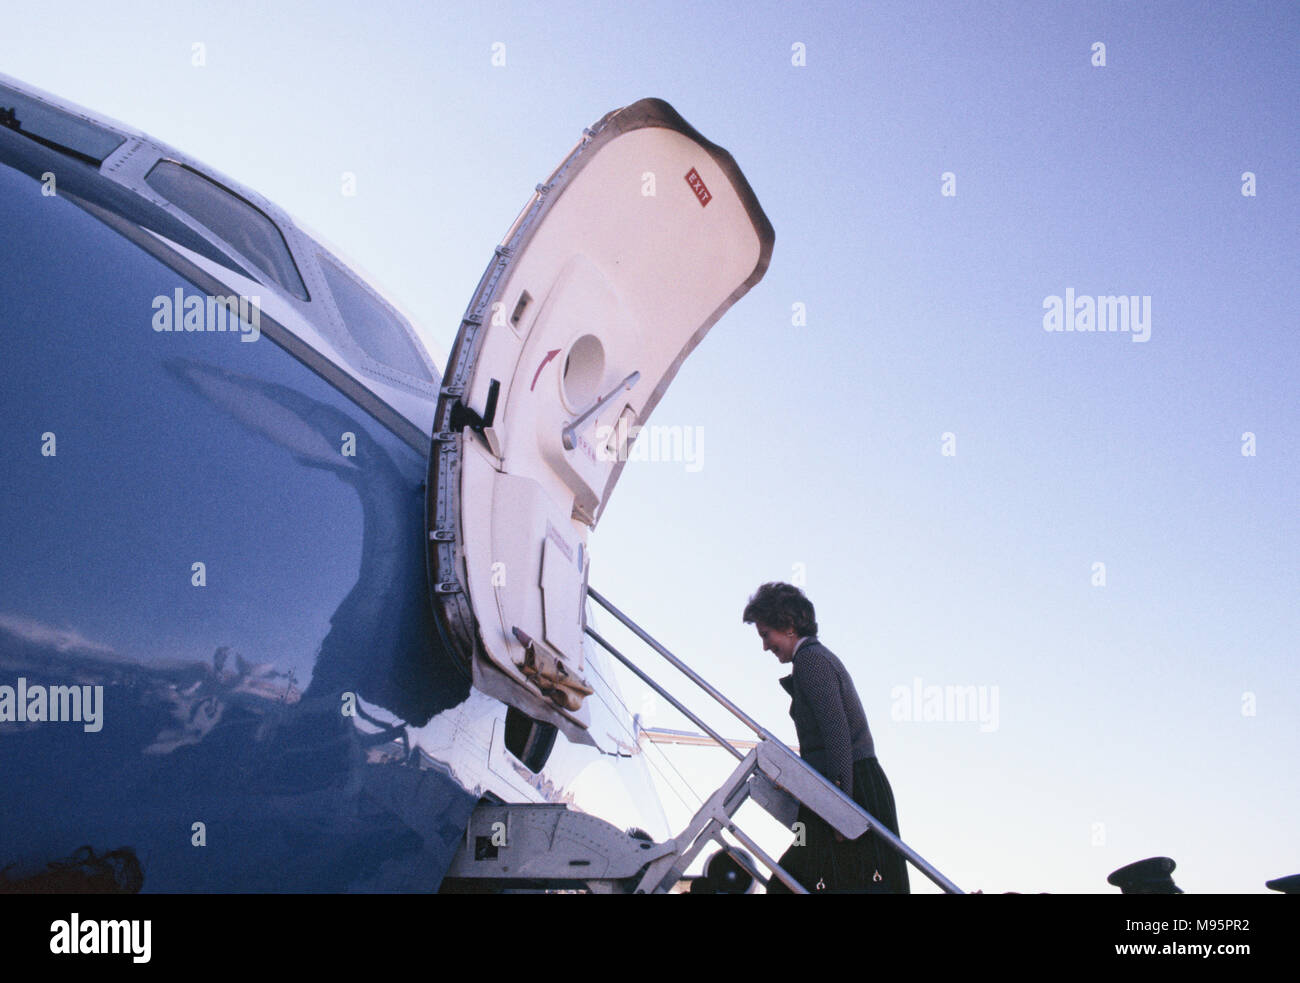 "First Lady boards White House jet from Florida in February 1982.  This is part of an anit dug campaign , :Just Say No""   Photograph by Dennis Brack - Stock Image"